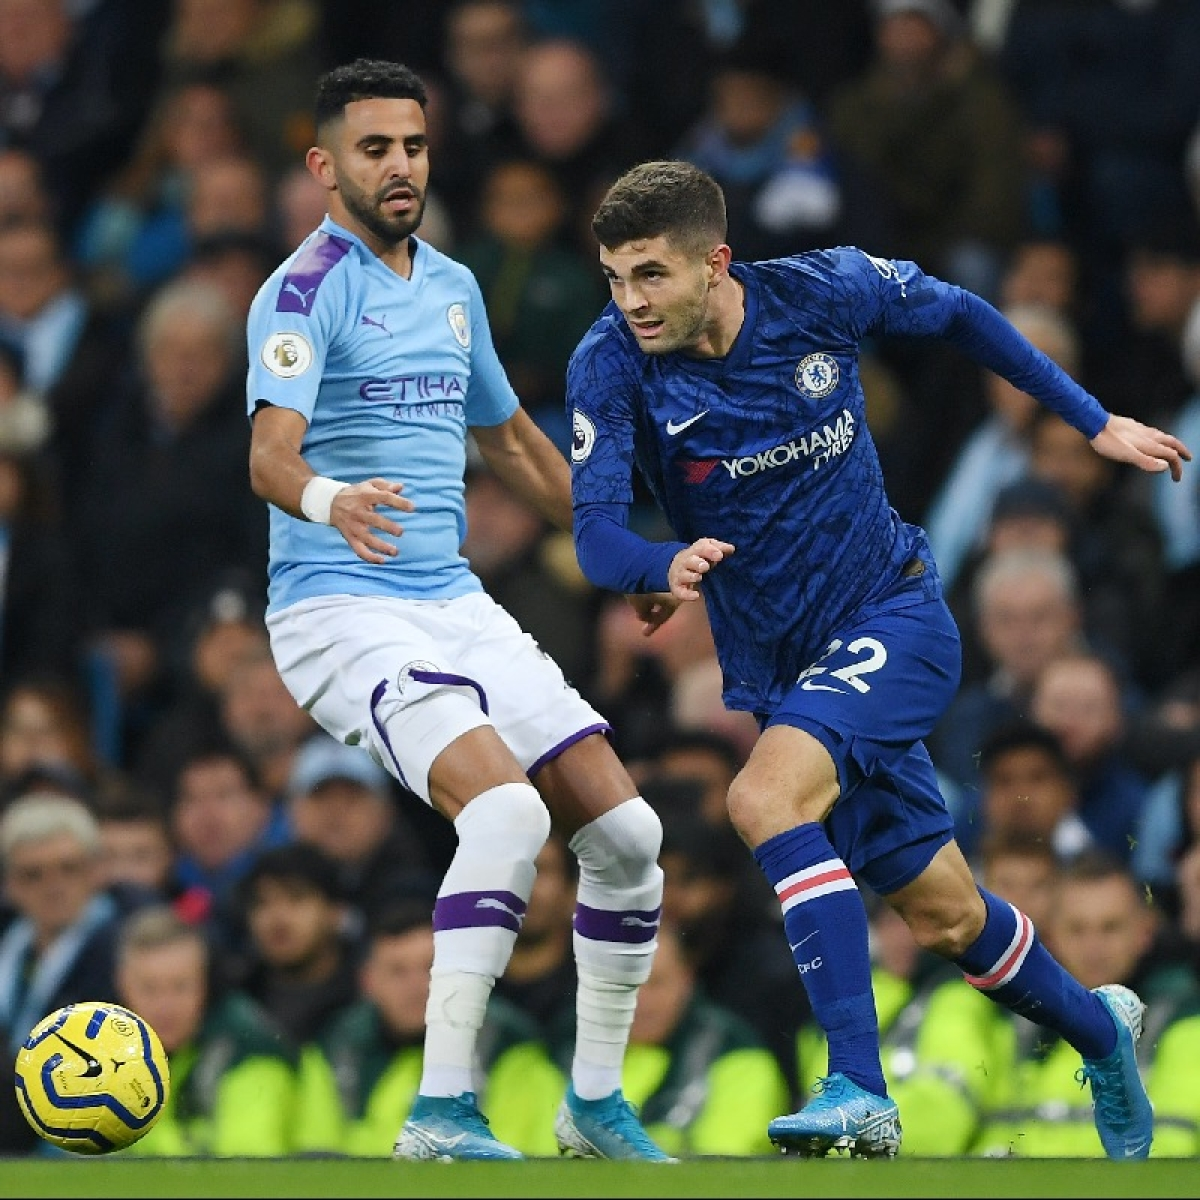 Chelsea vs Manchester City: Where and when to watch the Premier League fixture live in India